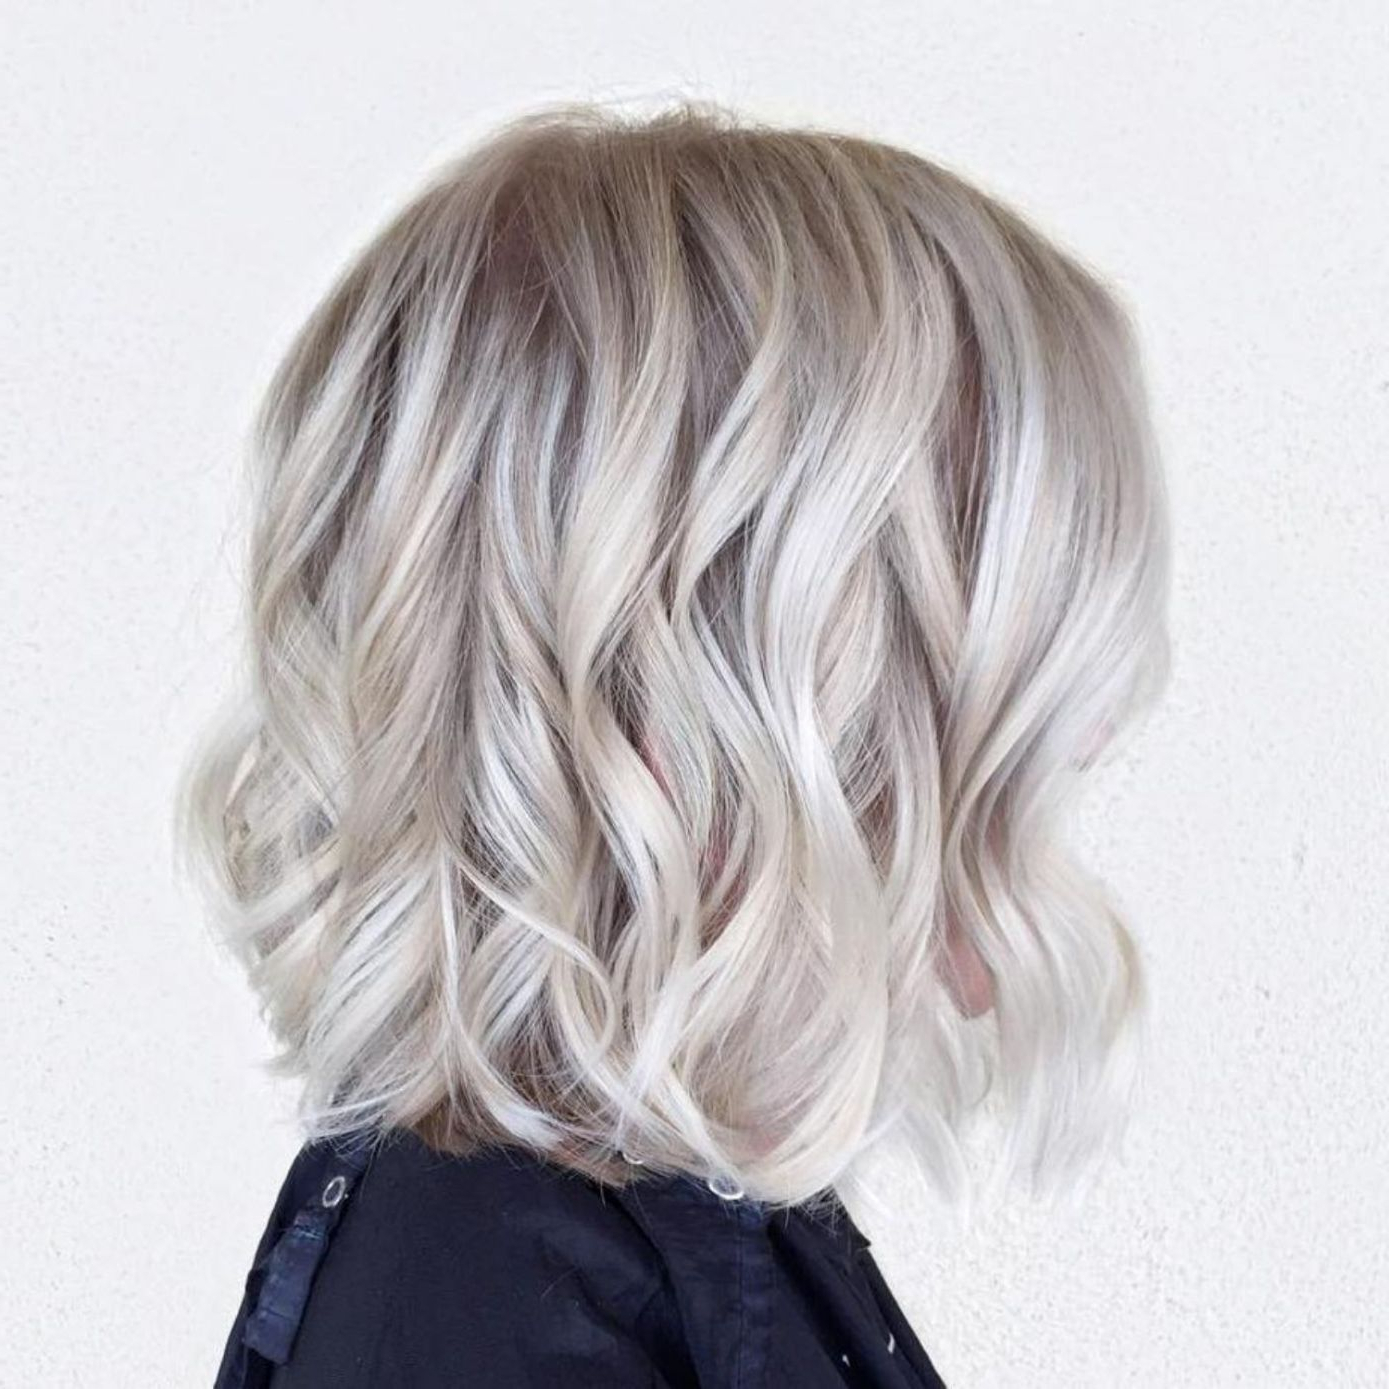 70 Winning Looks With Bob Haircuts For Fine Hair In 2018 | Hair Intended For White Blonde Curly Layered Bob Hairstyles (View 10 of 20)